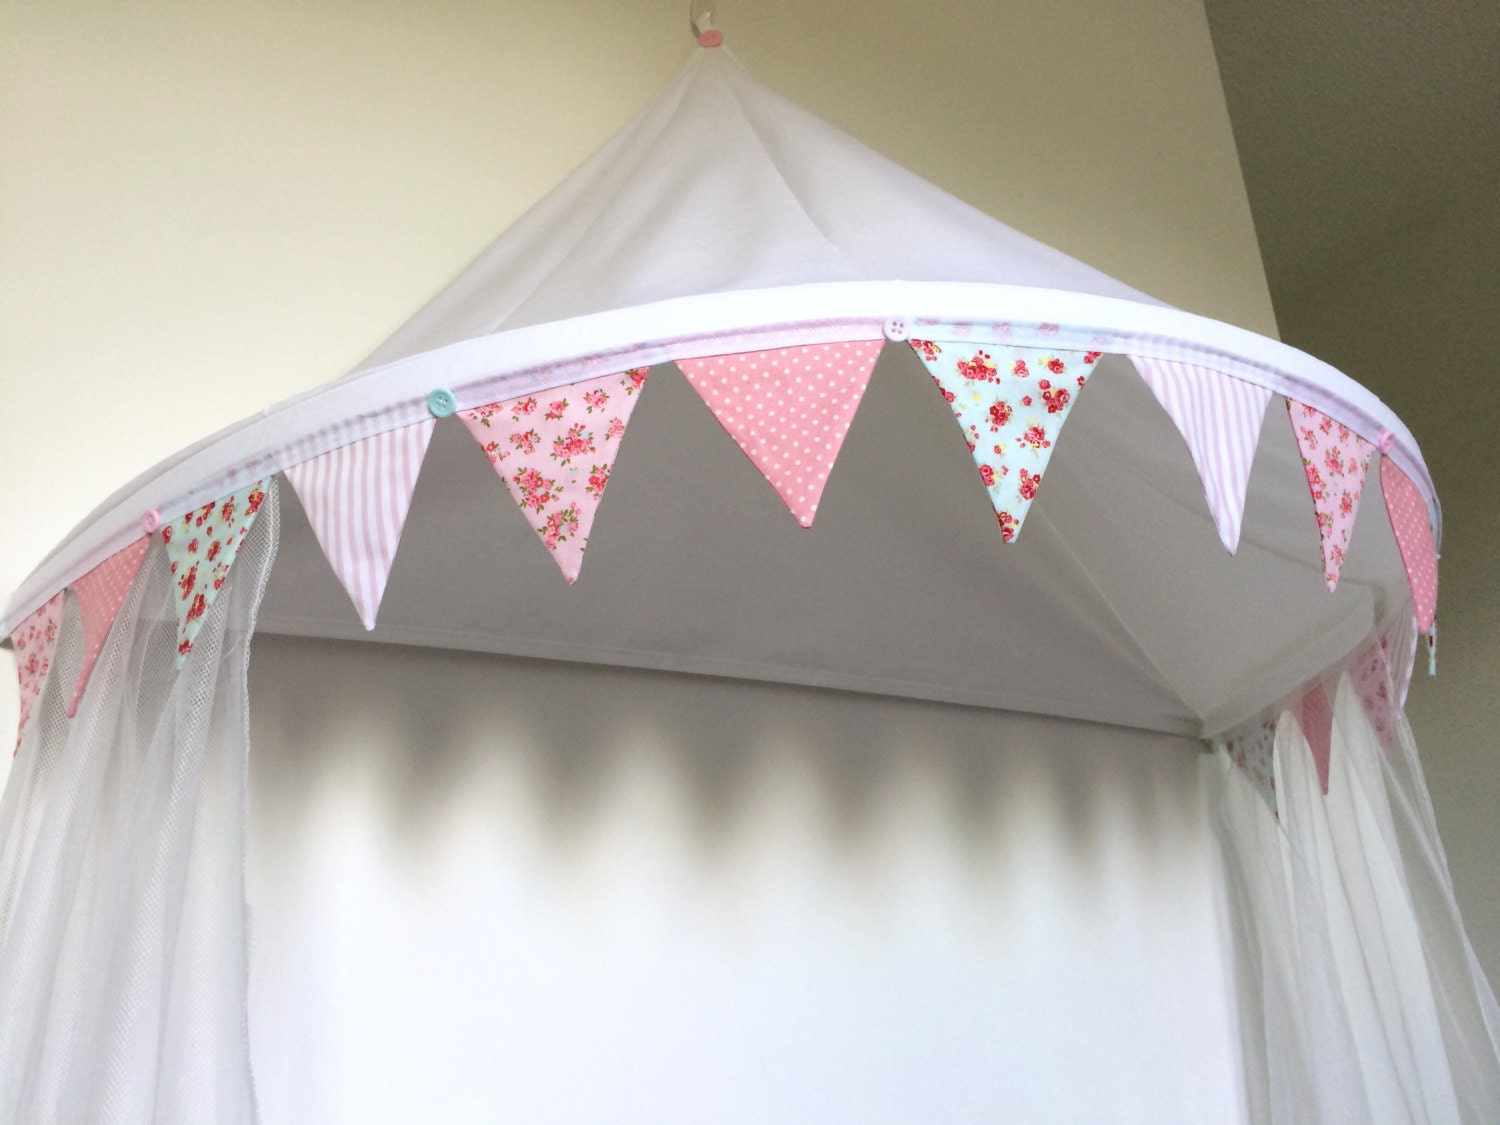 Single Bed Canopy Net Curtains And Bunting Trim Bed Canopy